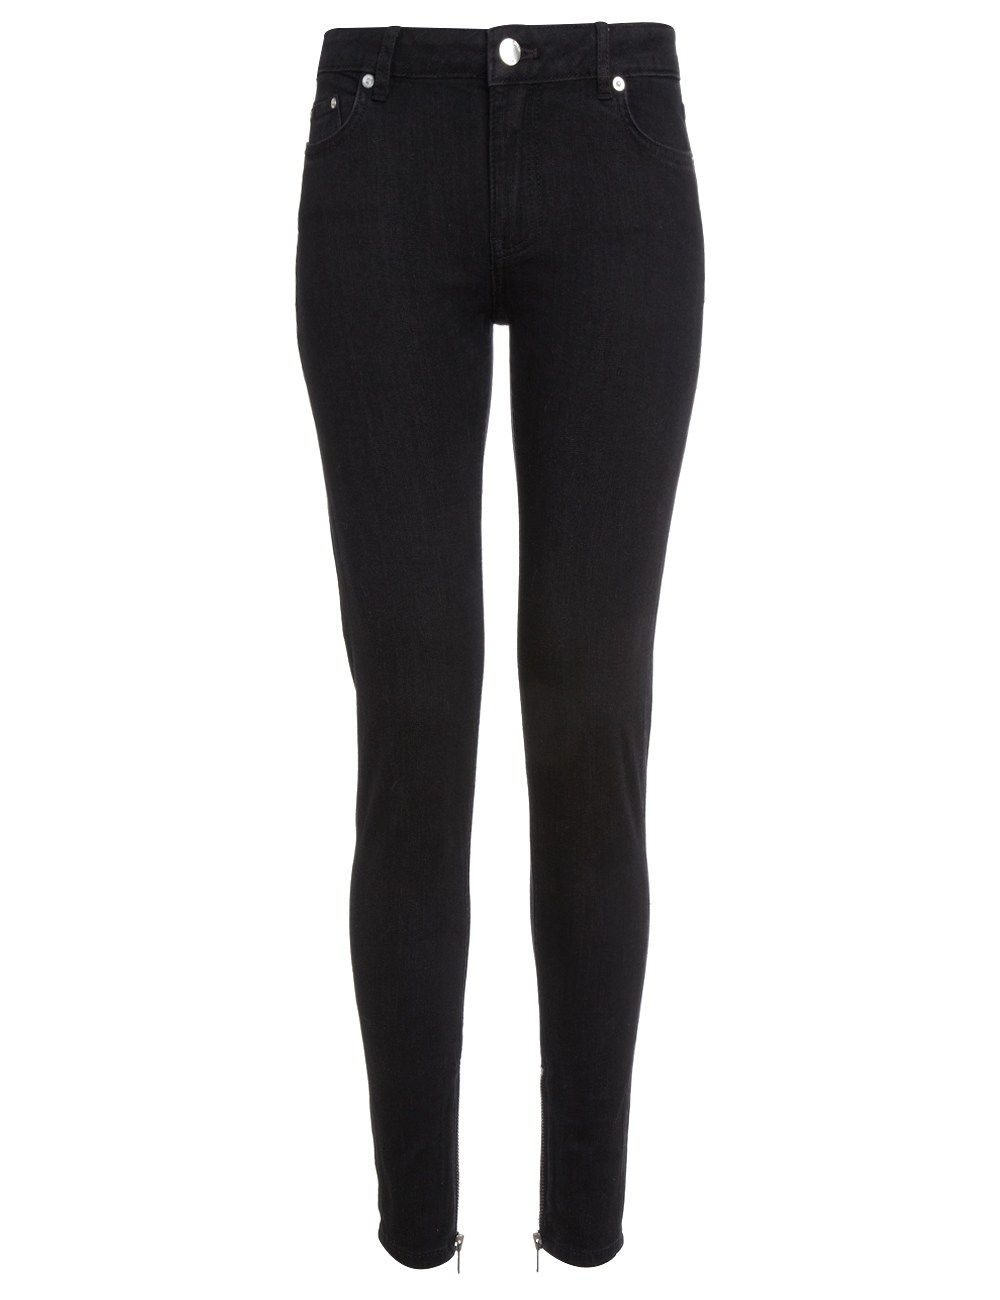 Blk dnm Black Skinny Jeans 4 in Black | Lyst